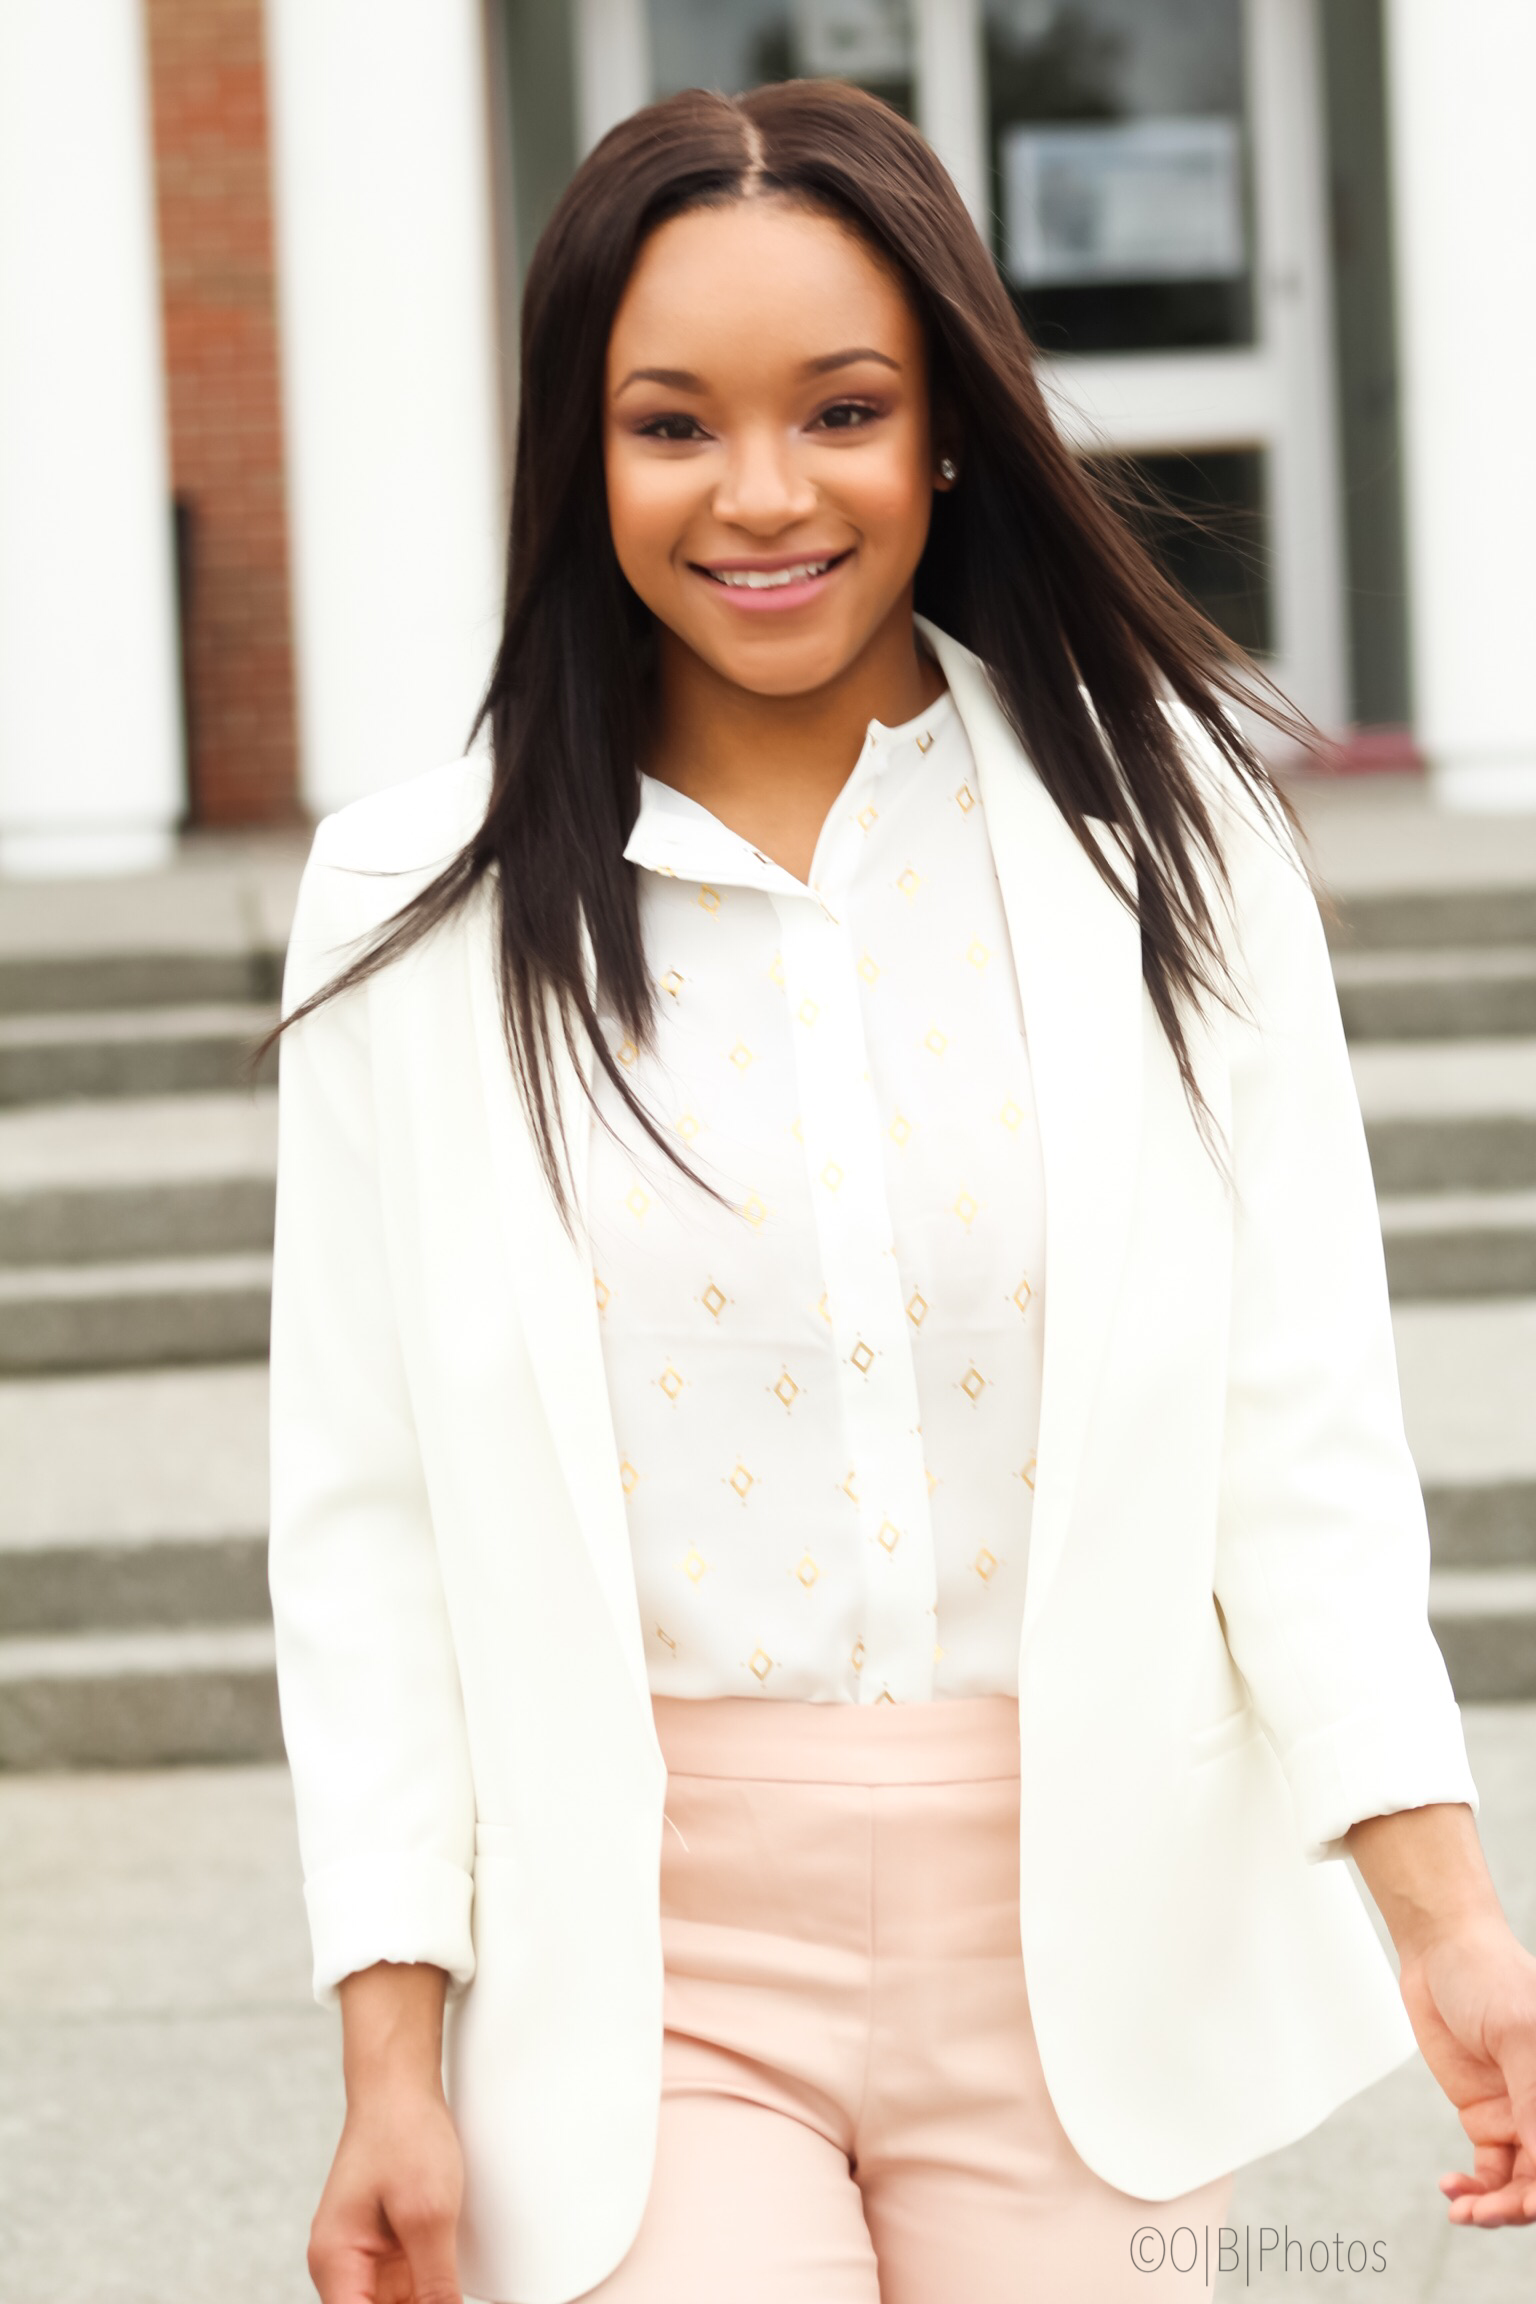 about me tonisha brown digital portfolio i am a nashville native a degree in integrated marketing communications from tennessee state university in my spare time i enjoy dancing